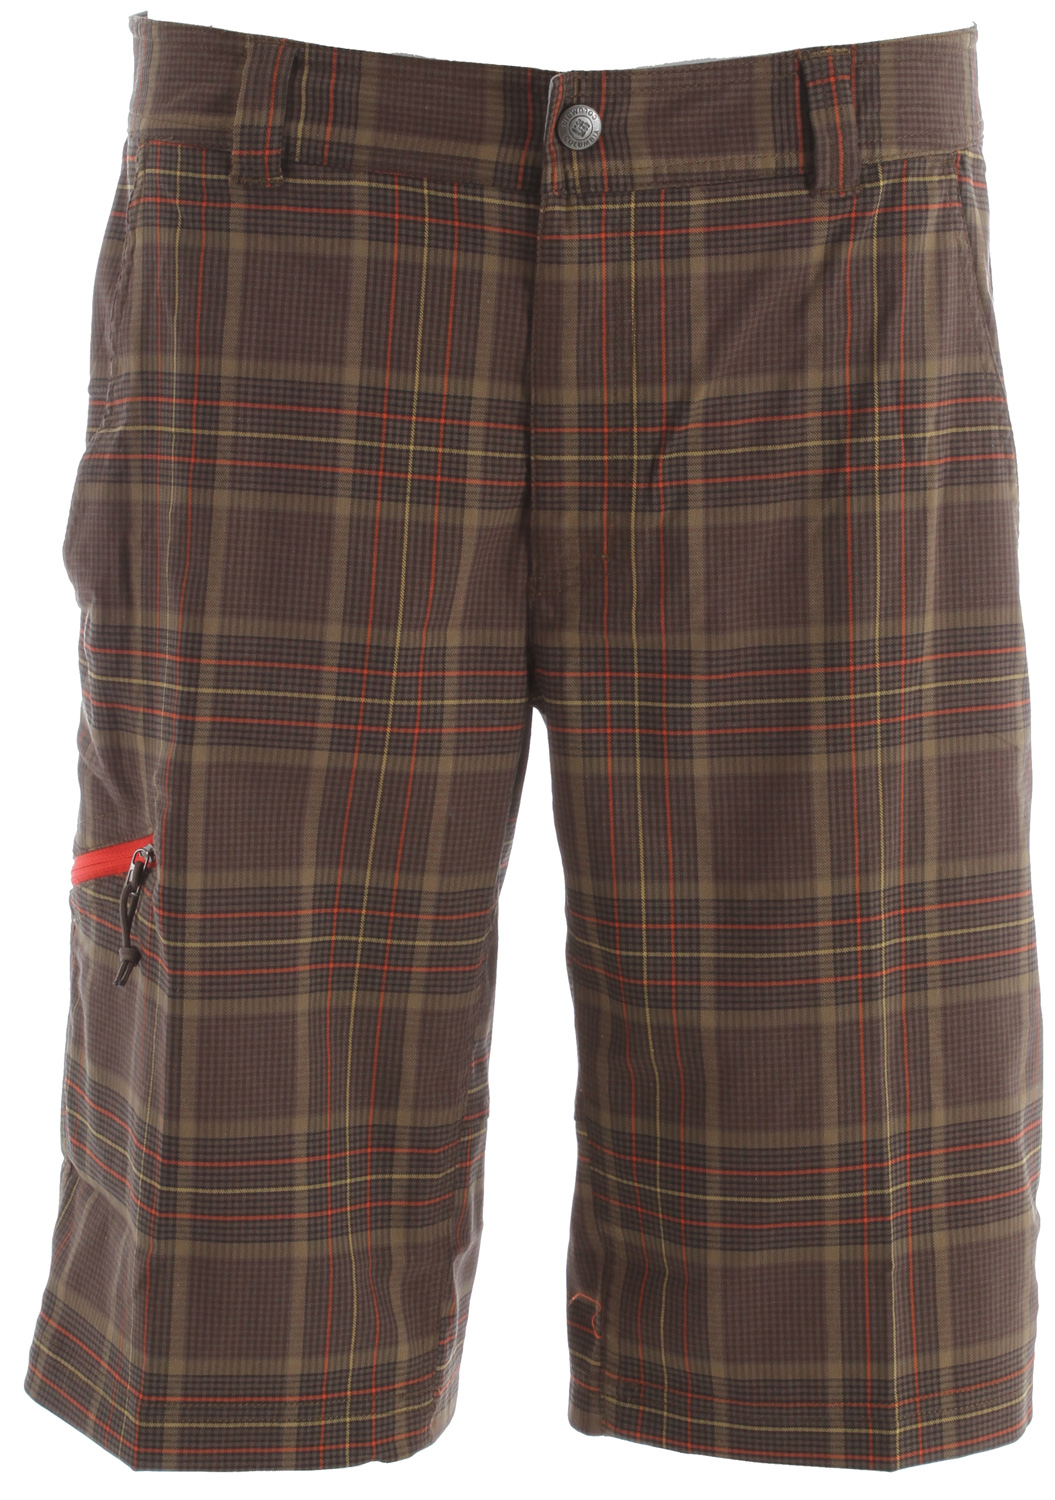 Key Features of the Columbia Cool Creek Stretch Plaid Shorts: 61% polyester/39% cotton, 57% recycled polyester/43% polyester mesh Omni-Wick™ UPF 15 sun protection Active fit 2-way comfort stretch Gusset detail Hook and loop closure Zip-closed security pocket Hand pockets Mesh pocket bags - $54.95